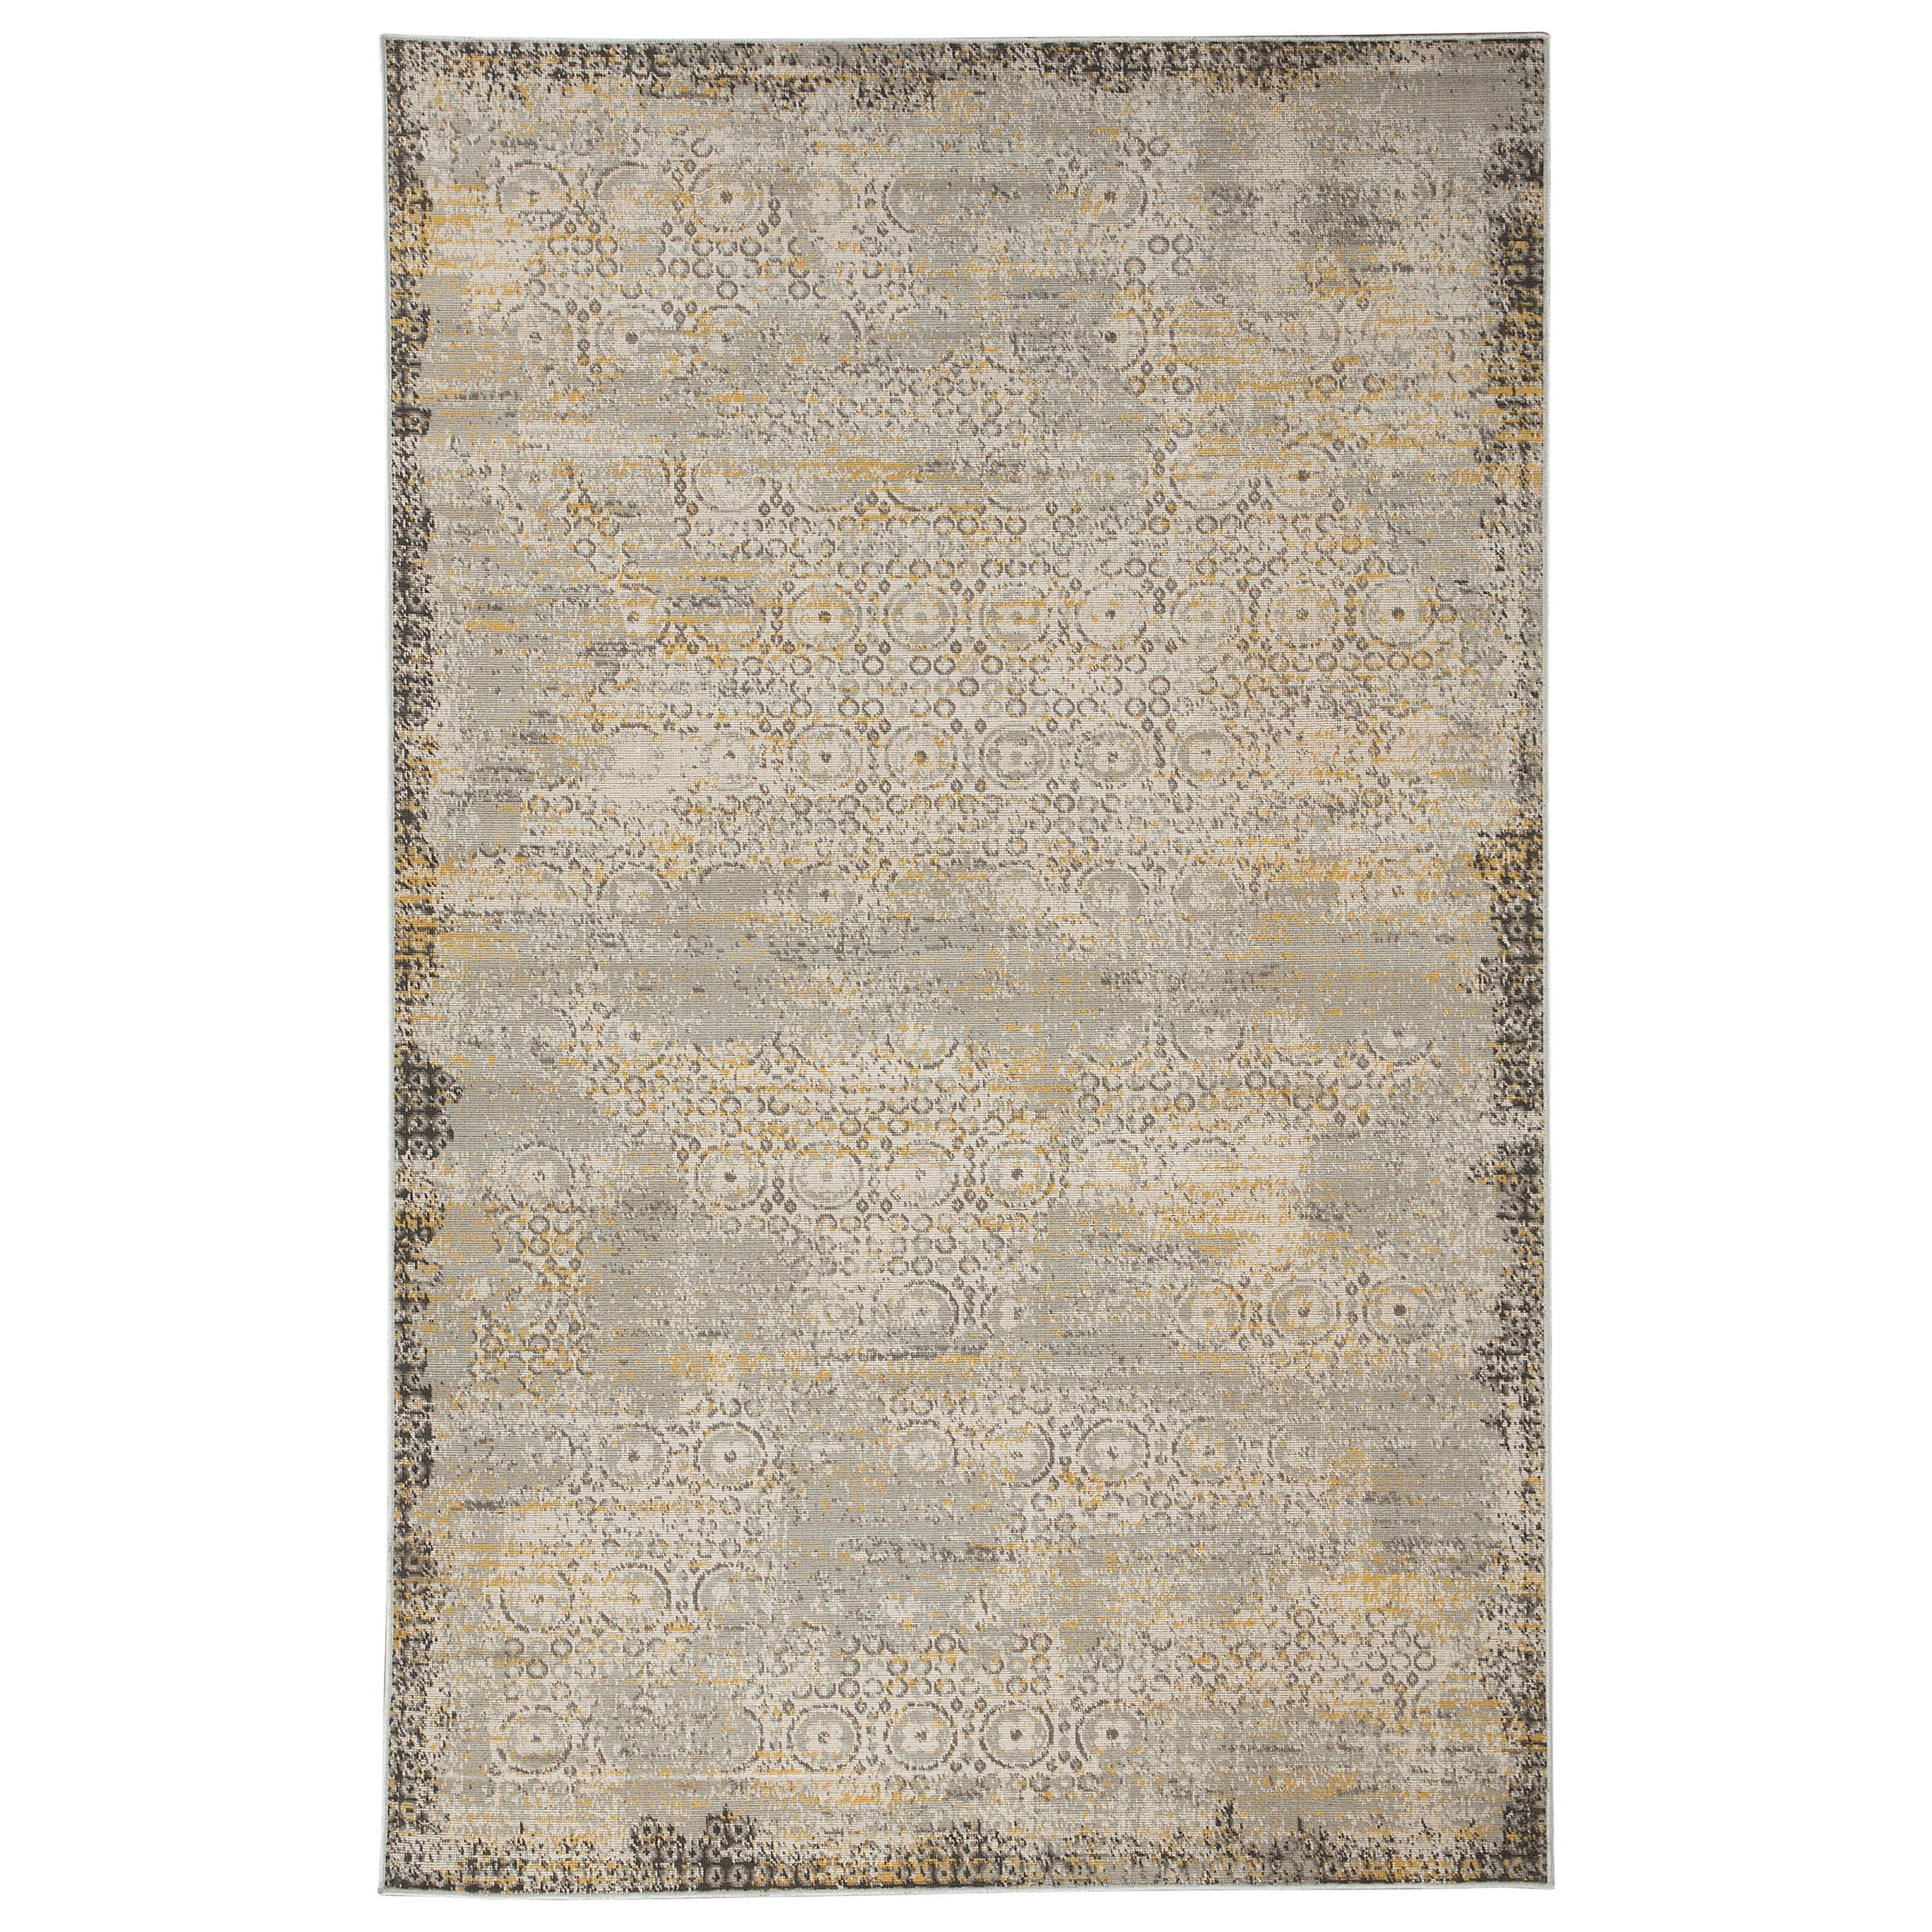 Signature Design by Ashley Transitional Area Rugs Dallon Silver Medium Rug - Item Number: R400462